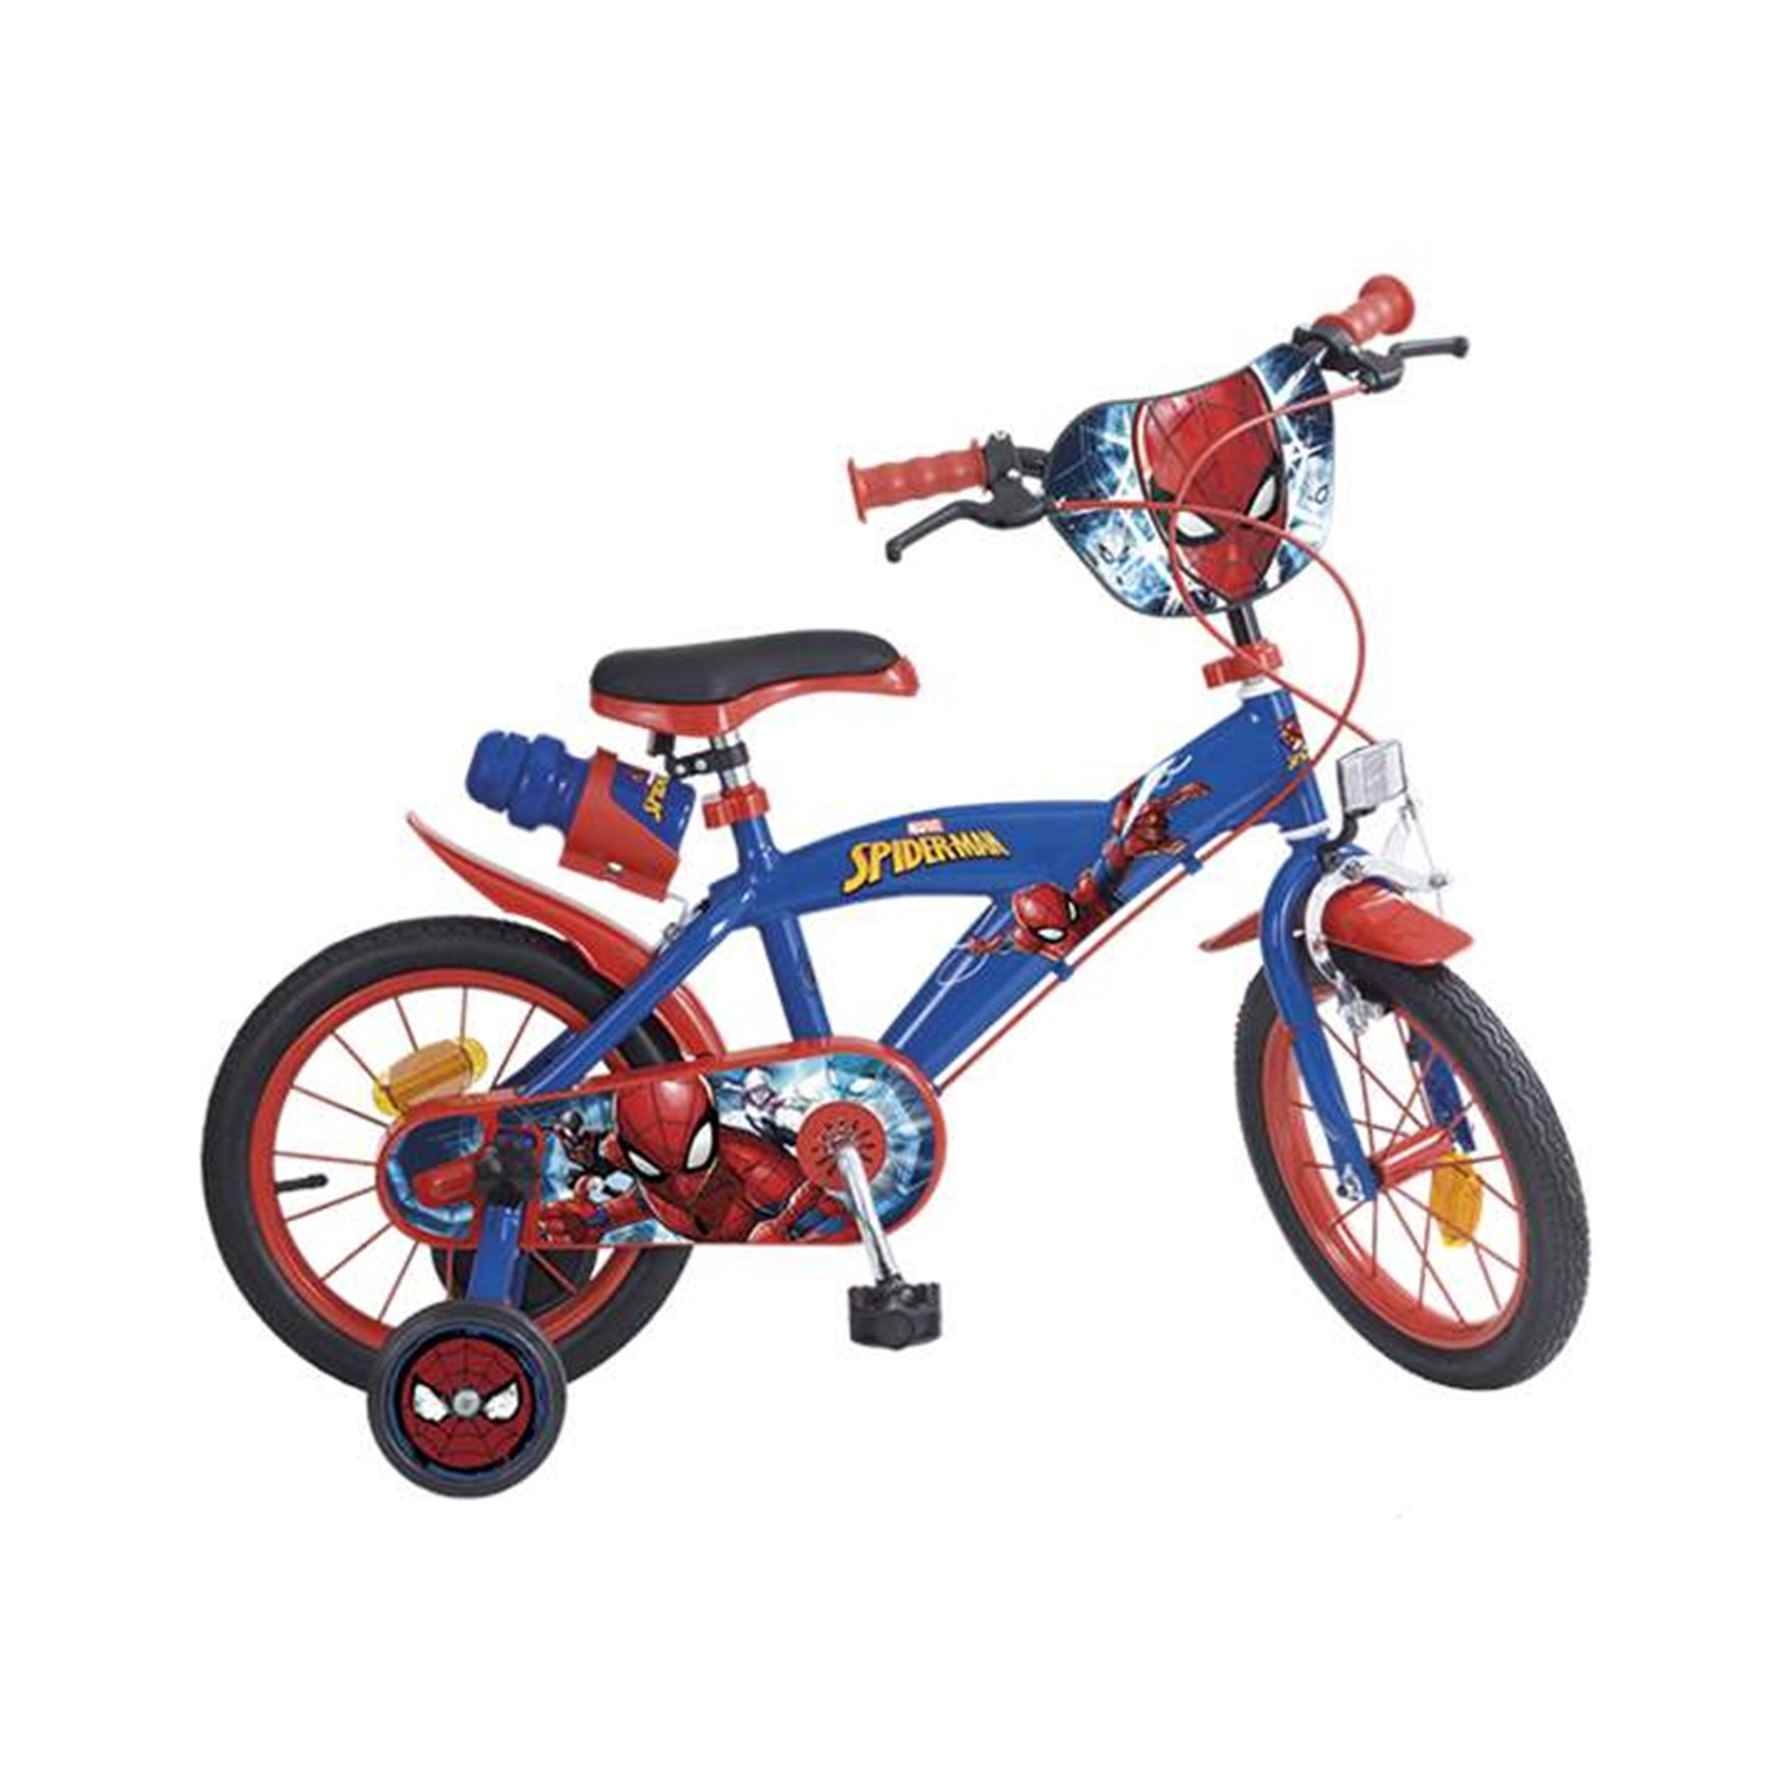 Spiderman Bicicleta 14'